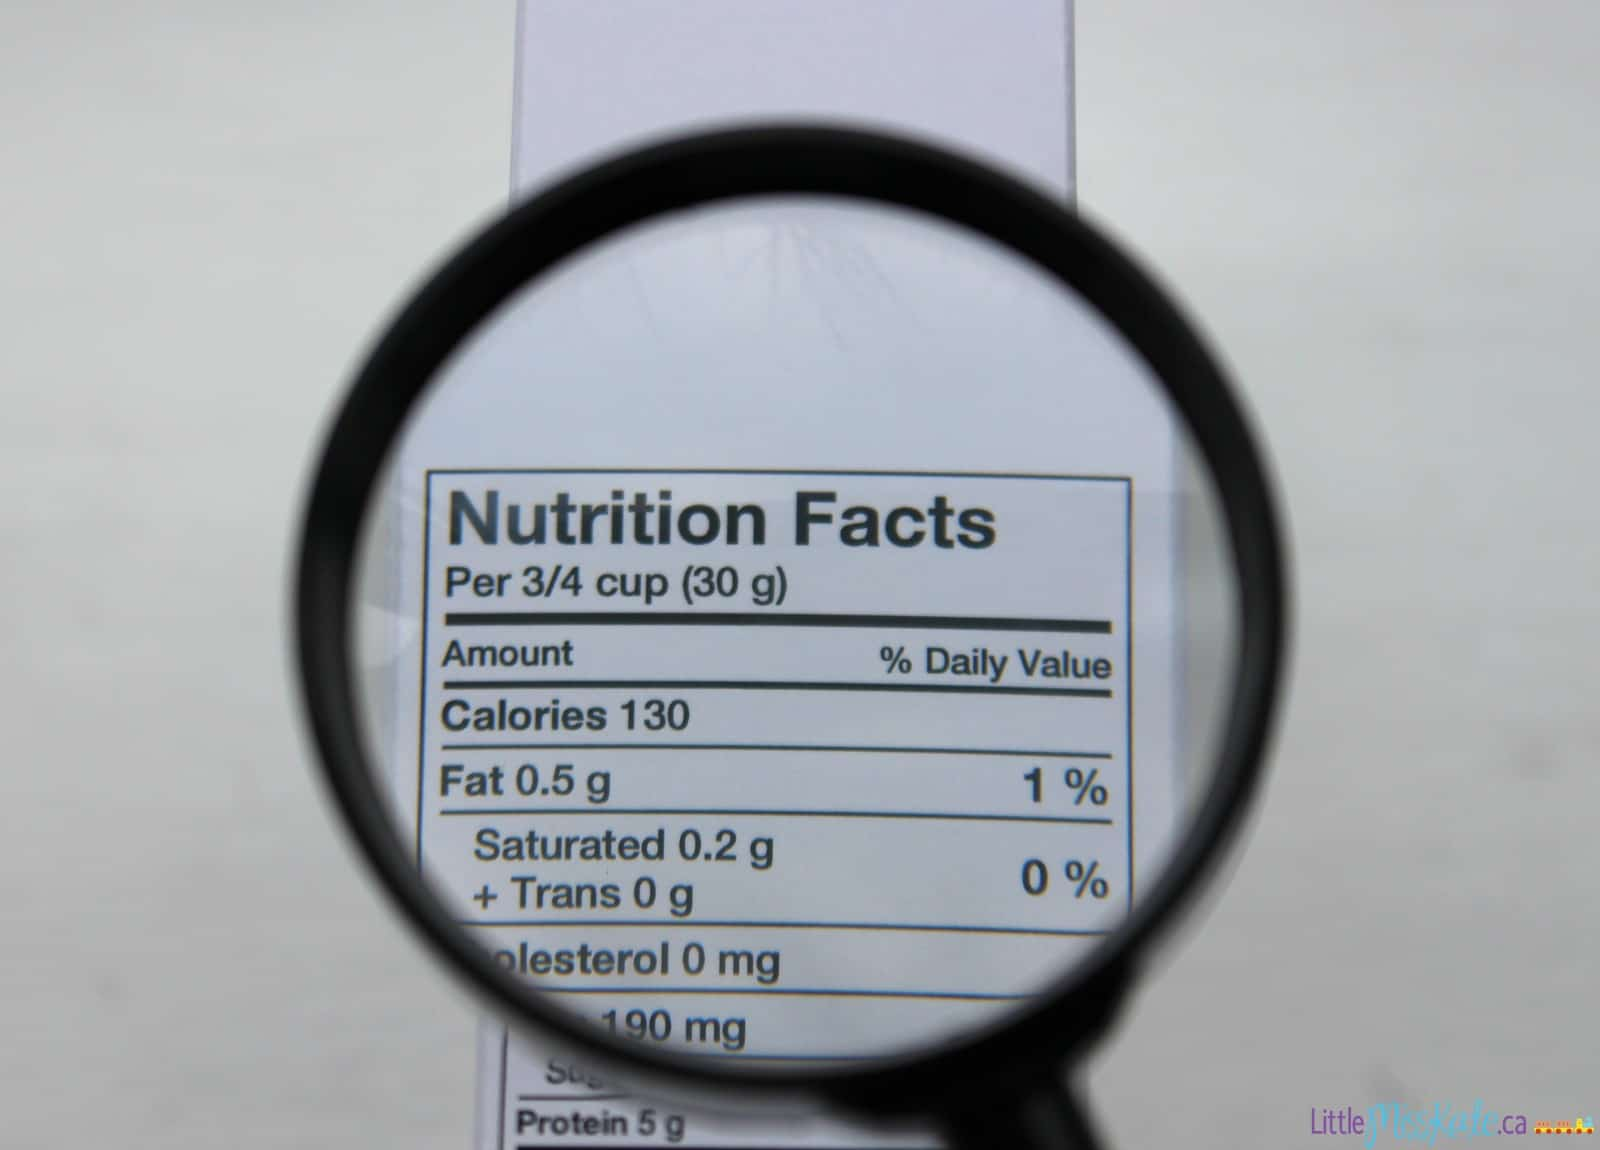 It's Time To Lead By Example When It Comes To Food and  Focus On The Facts